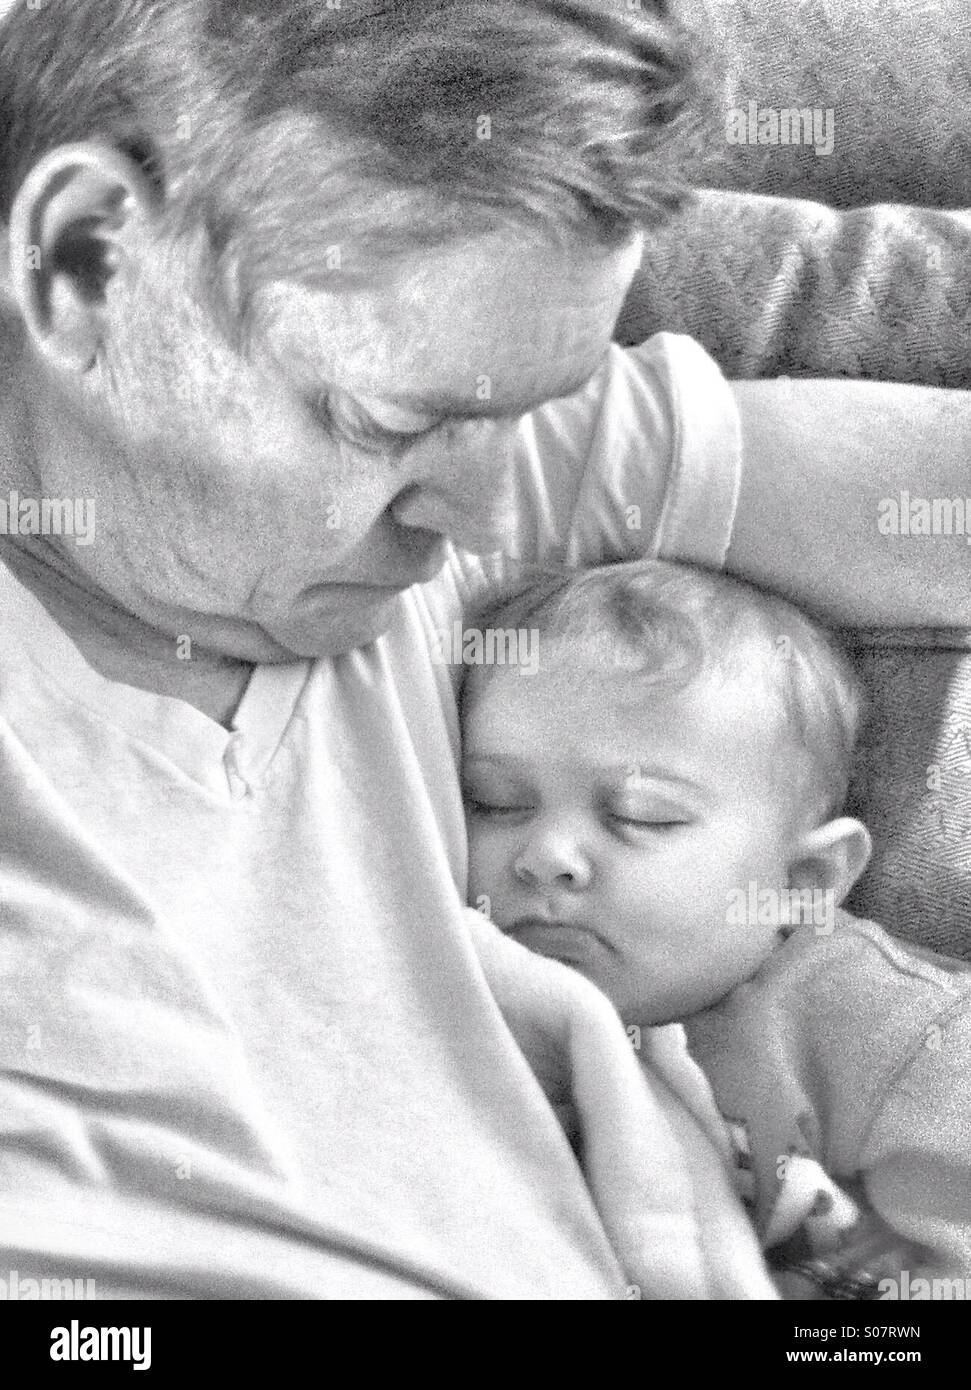 Soft sweet image of Granddad & Baby Boy Black and white - Stock Image